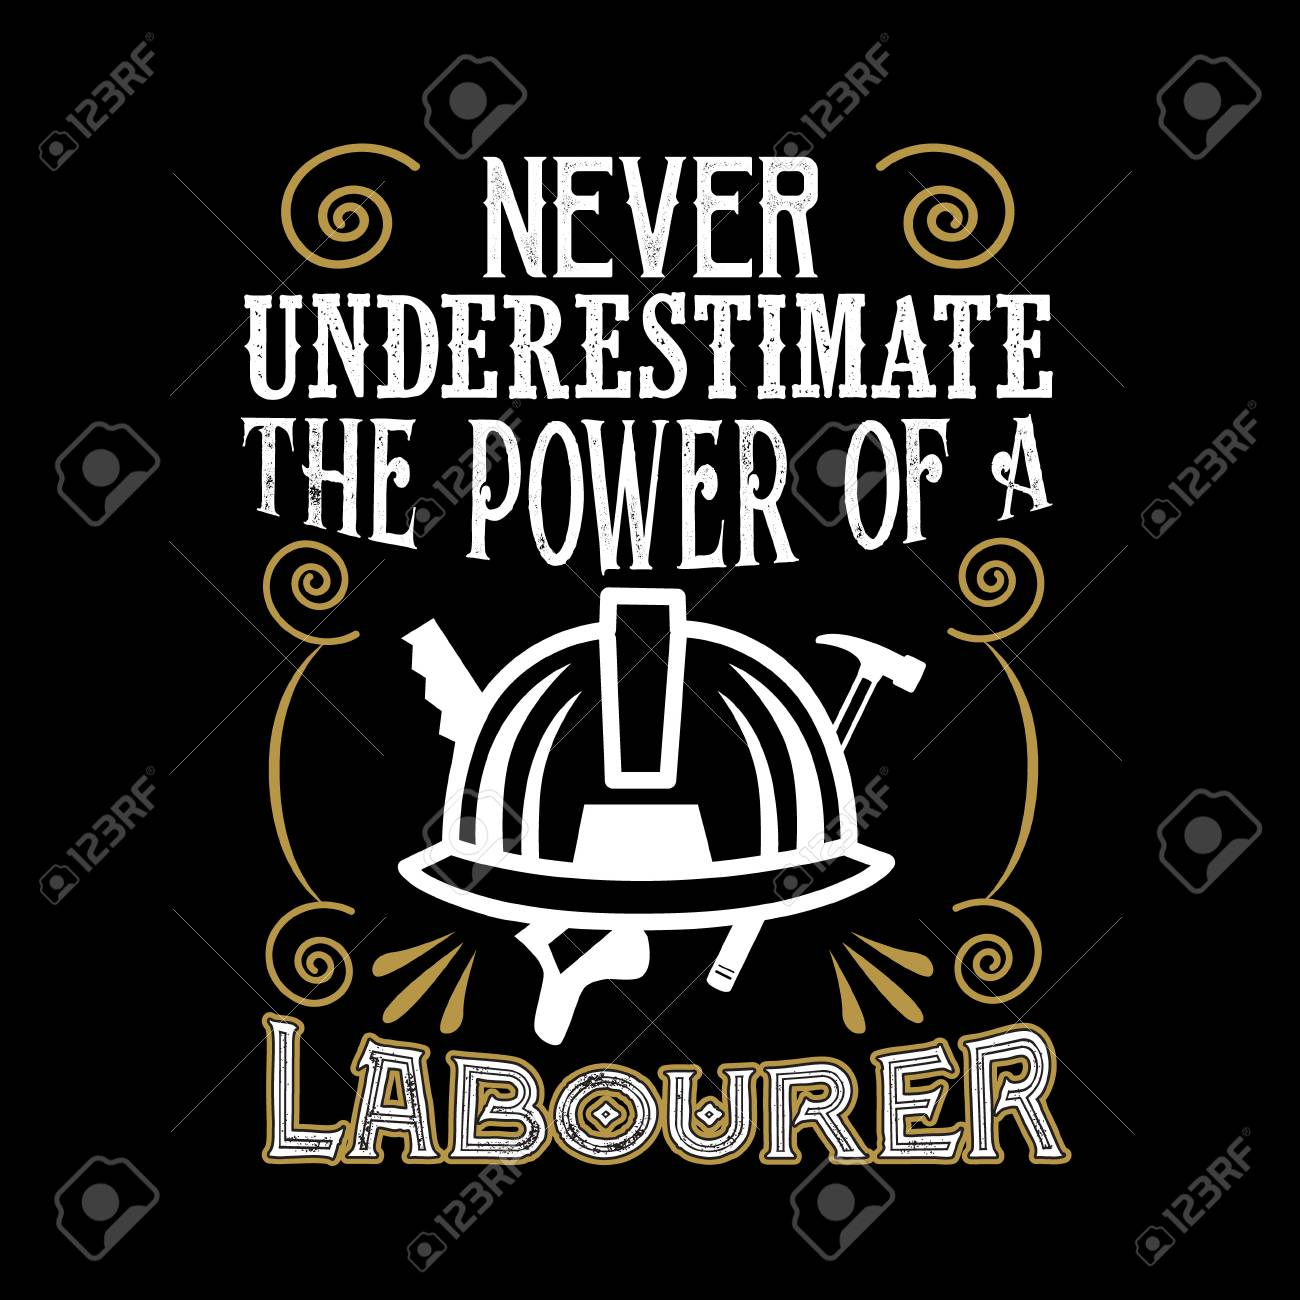 Never Underestimate The power of a Laborer - 117043974